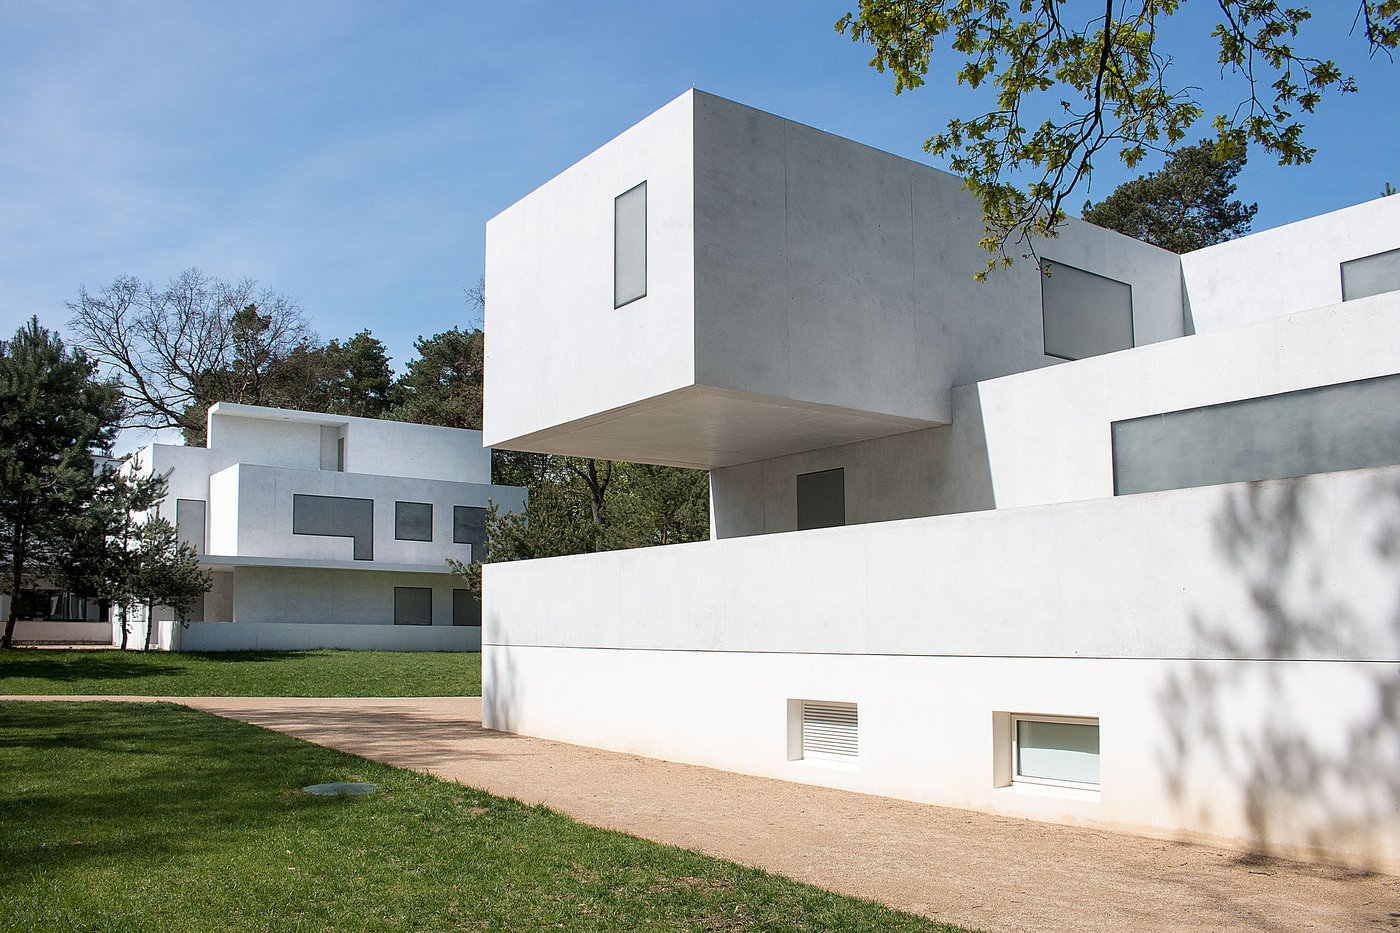 New Masters Houses By Bruno Fioretti Marquez 2014